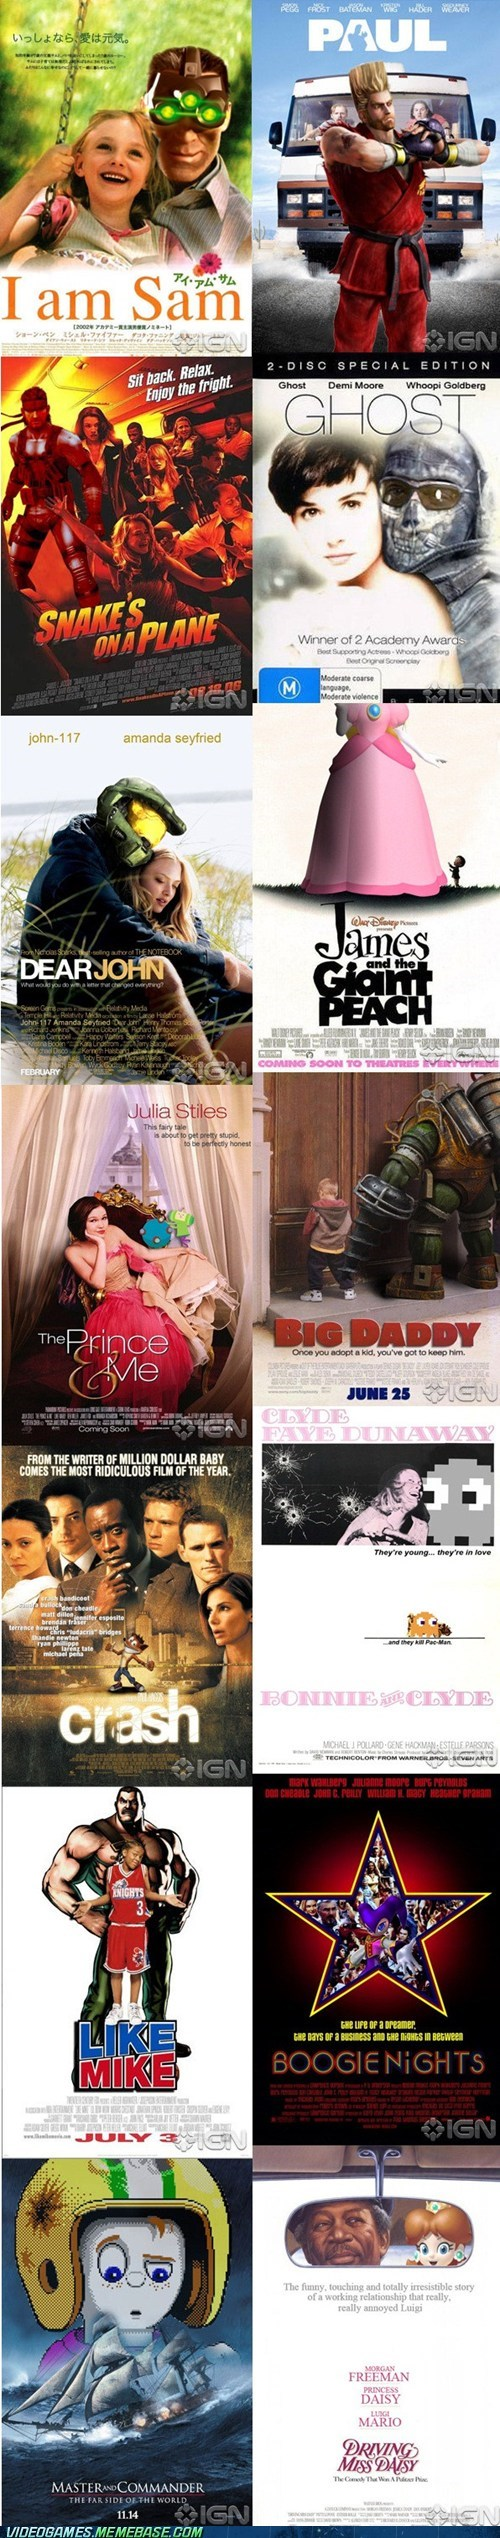 best of week,movies,posters,the internets,video games